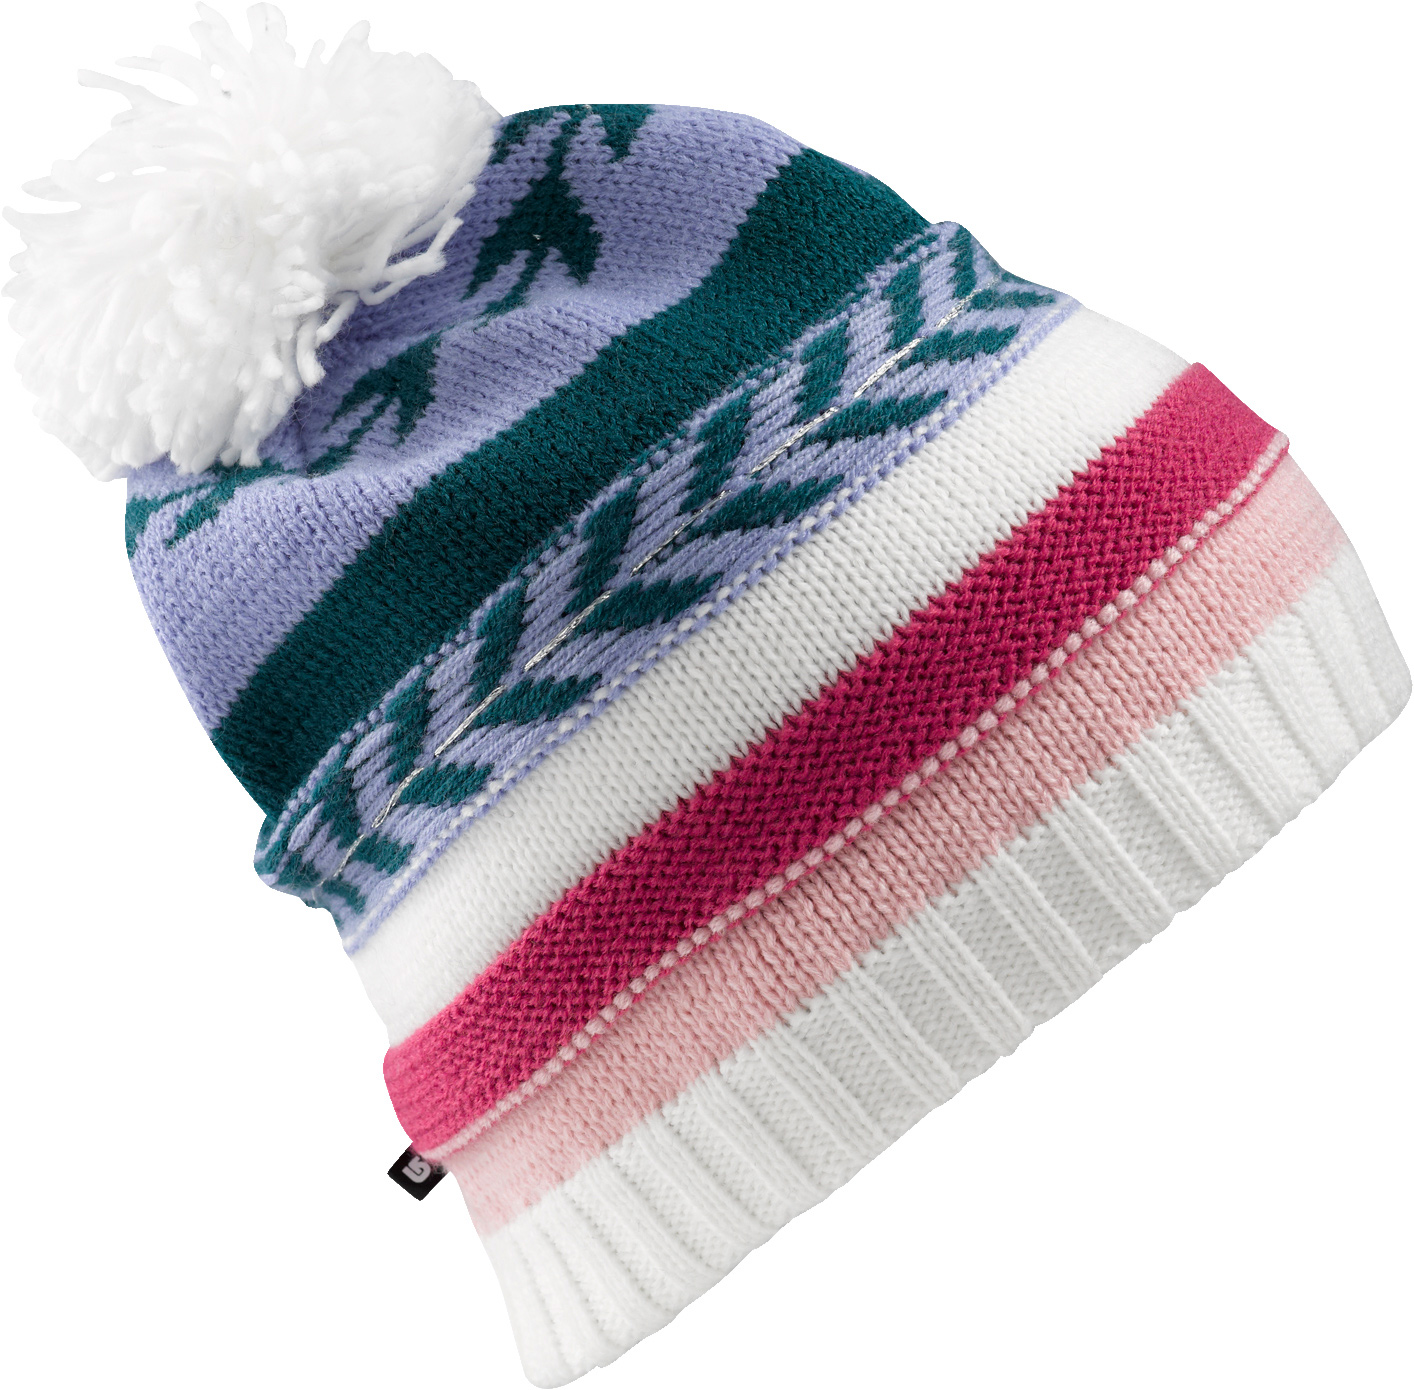 Snowboard Key Features of the Burton Dreamcatcher Beanie: 100% Acrylic with Lurex Detail Double Layer Multi Stripe Beanie with Pom Skully Fit - $31.00